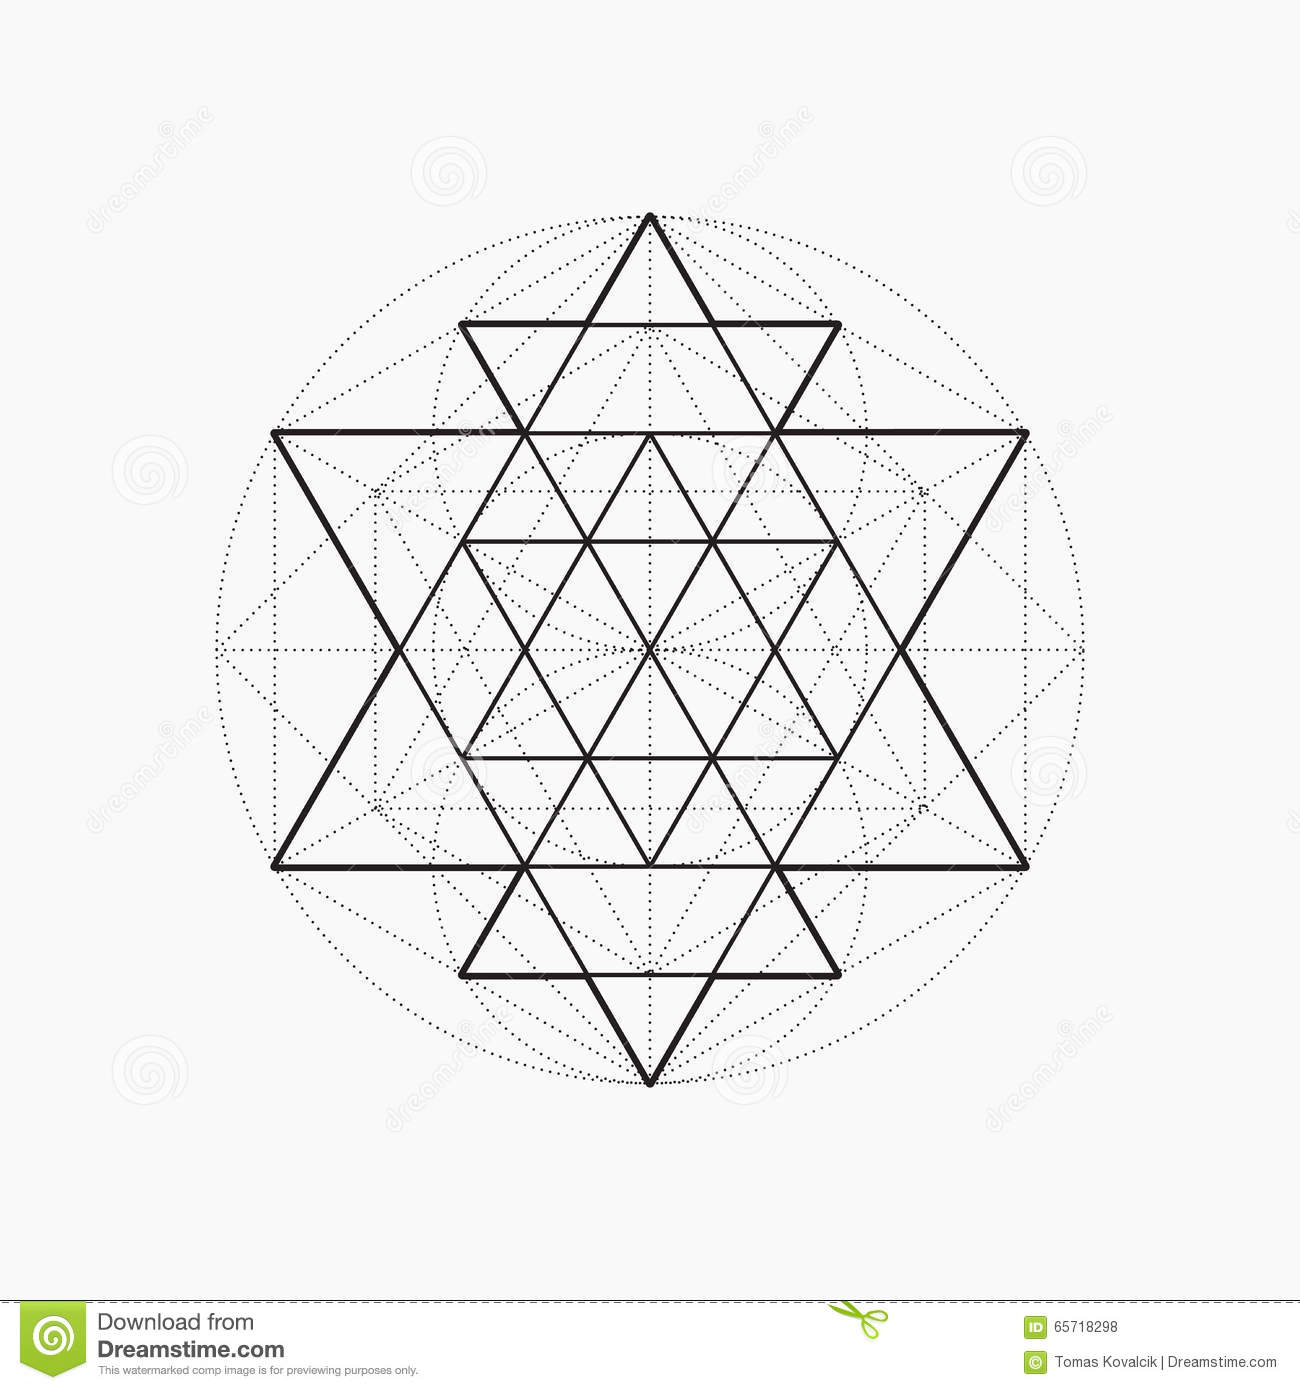 Geometric shapes line design triangle stock vector geometric shapes line design triangle buycottarizona